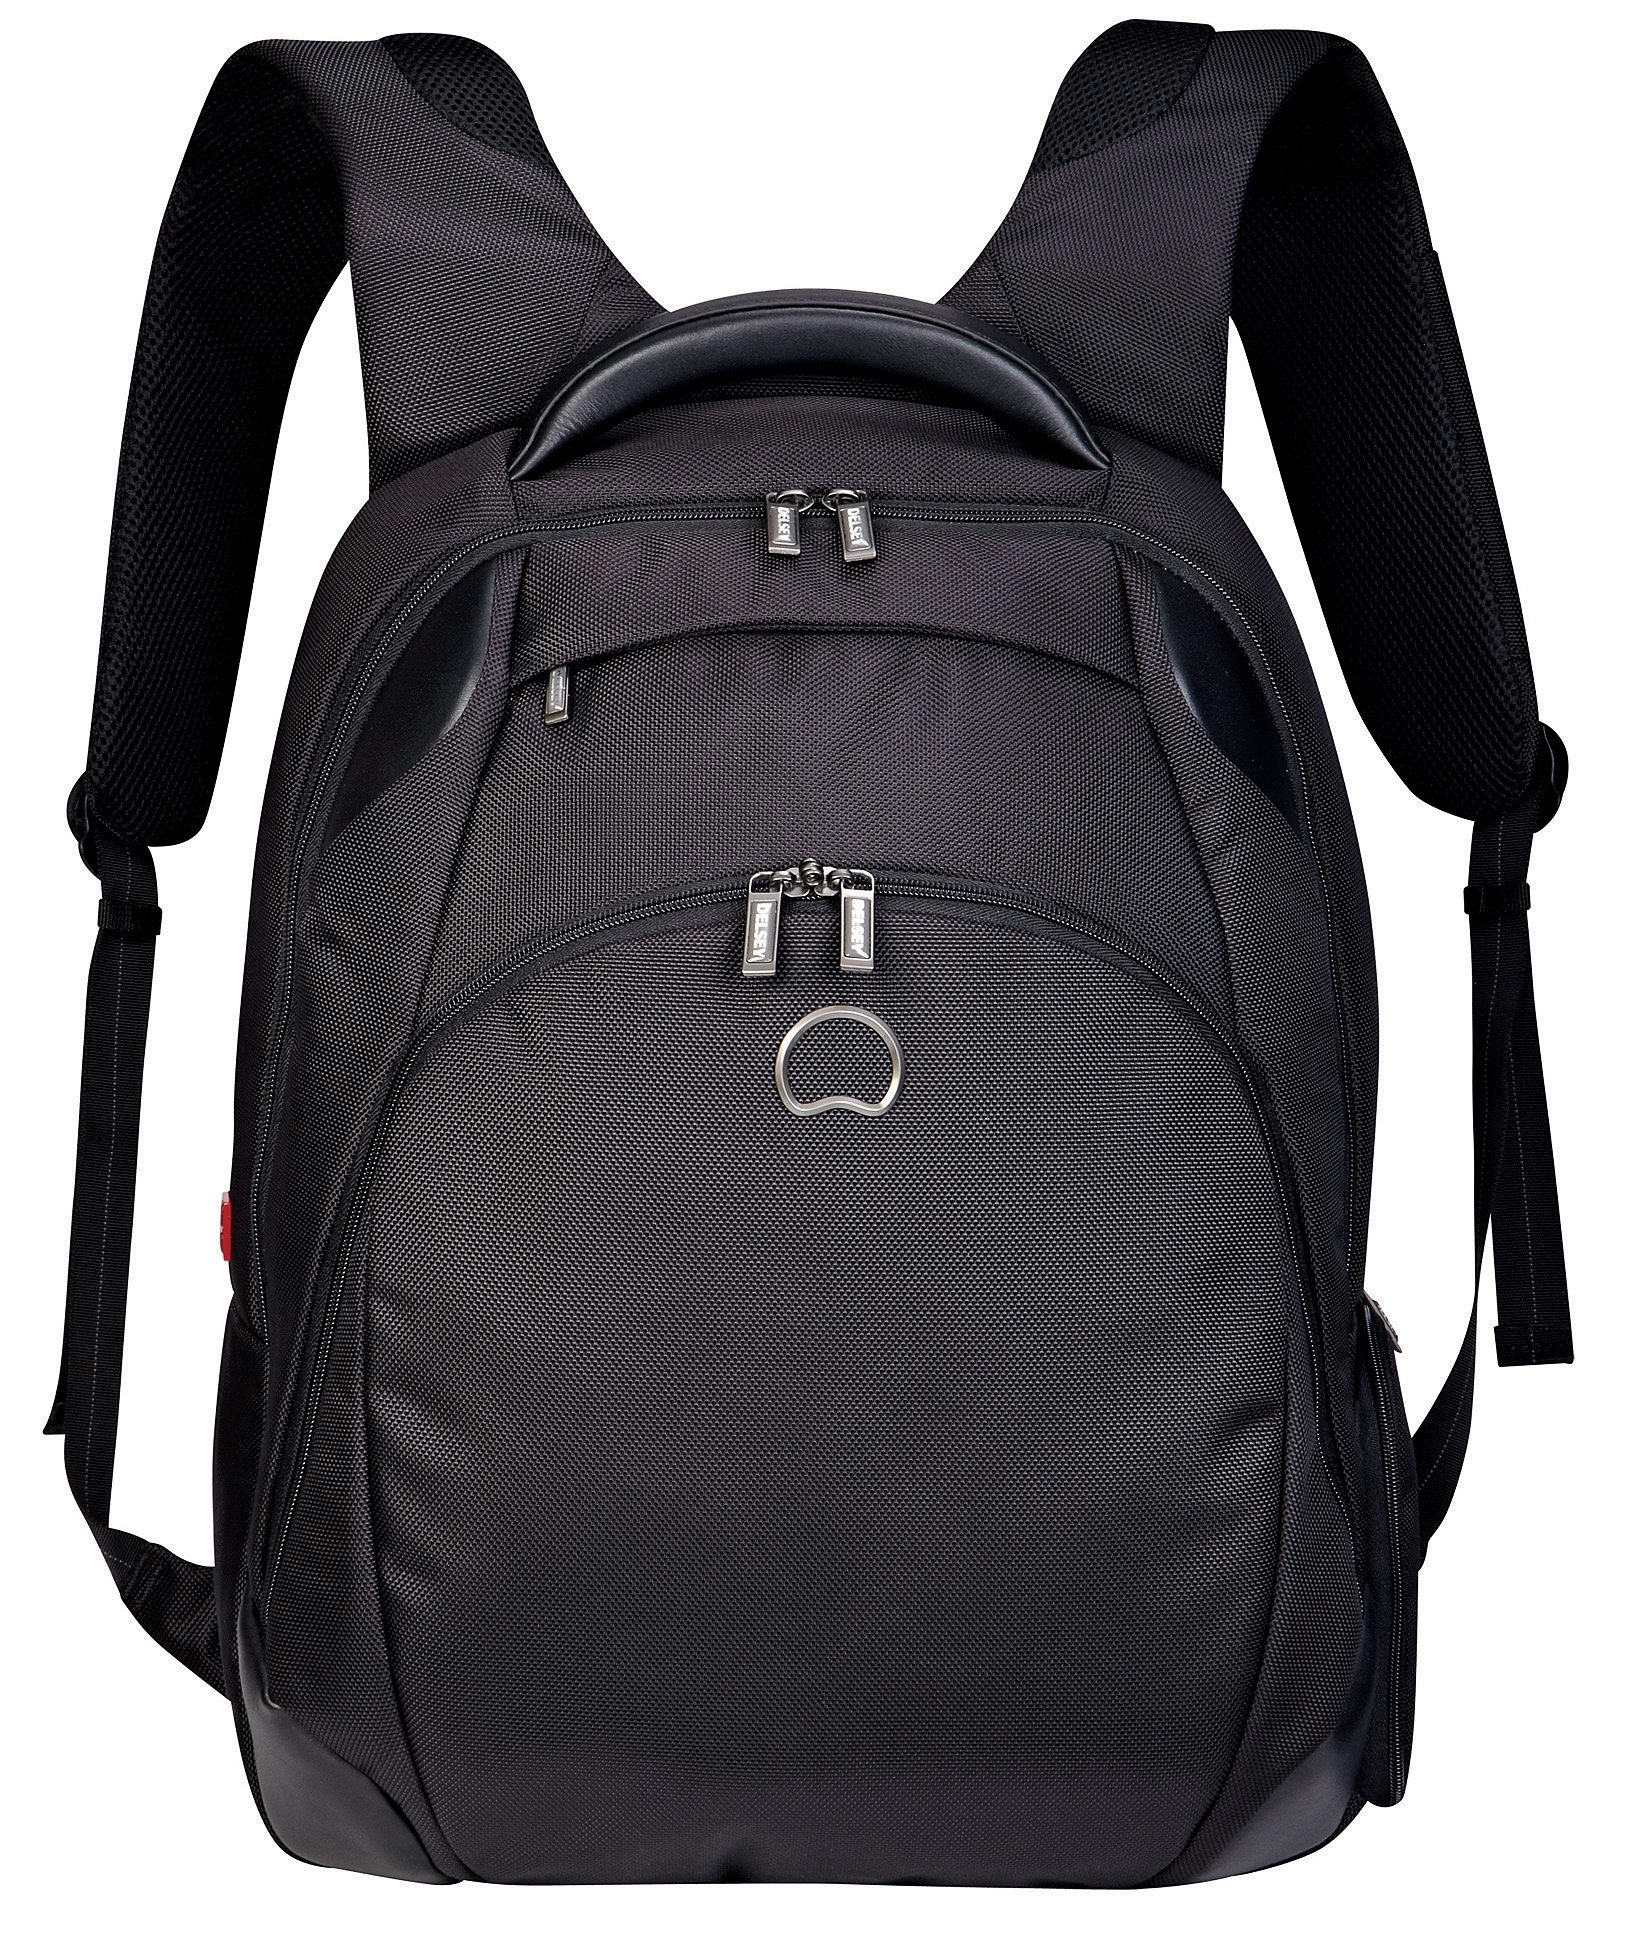 DELSEY Business Rucksack mit 17,3-Zoll Laptopfach, »Quarterback+«